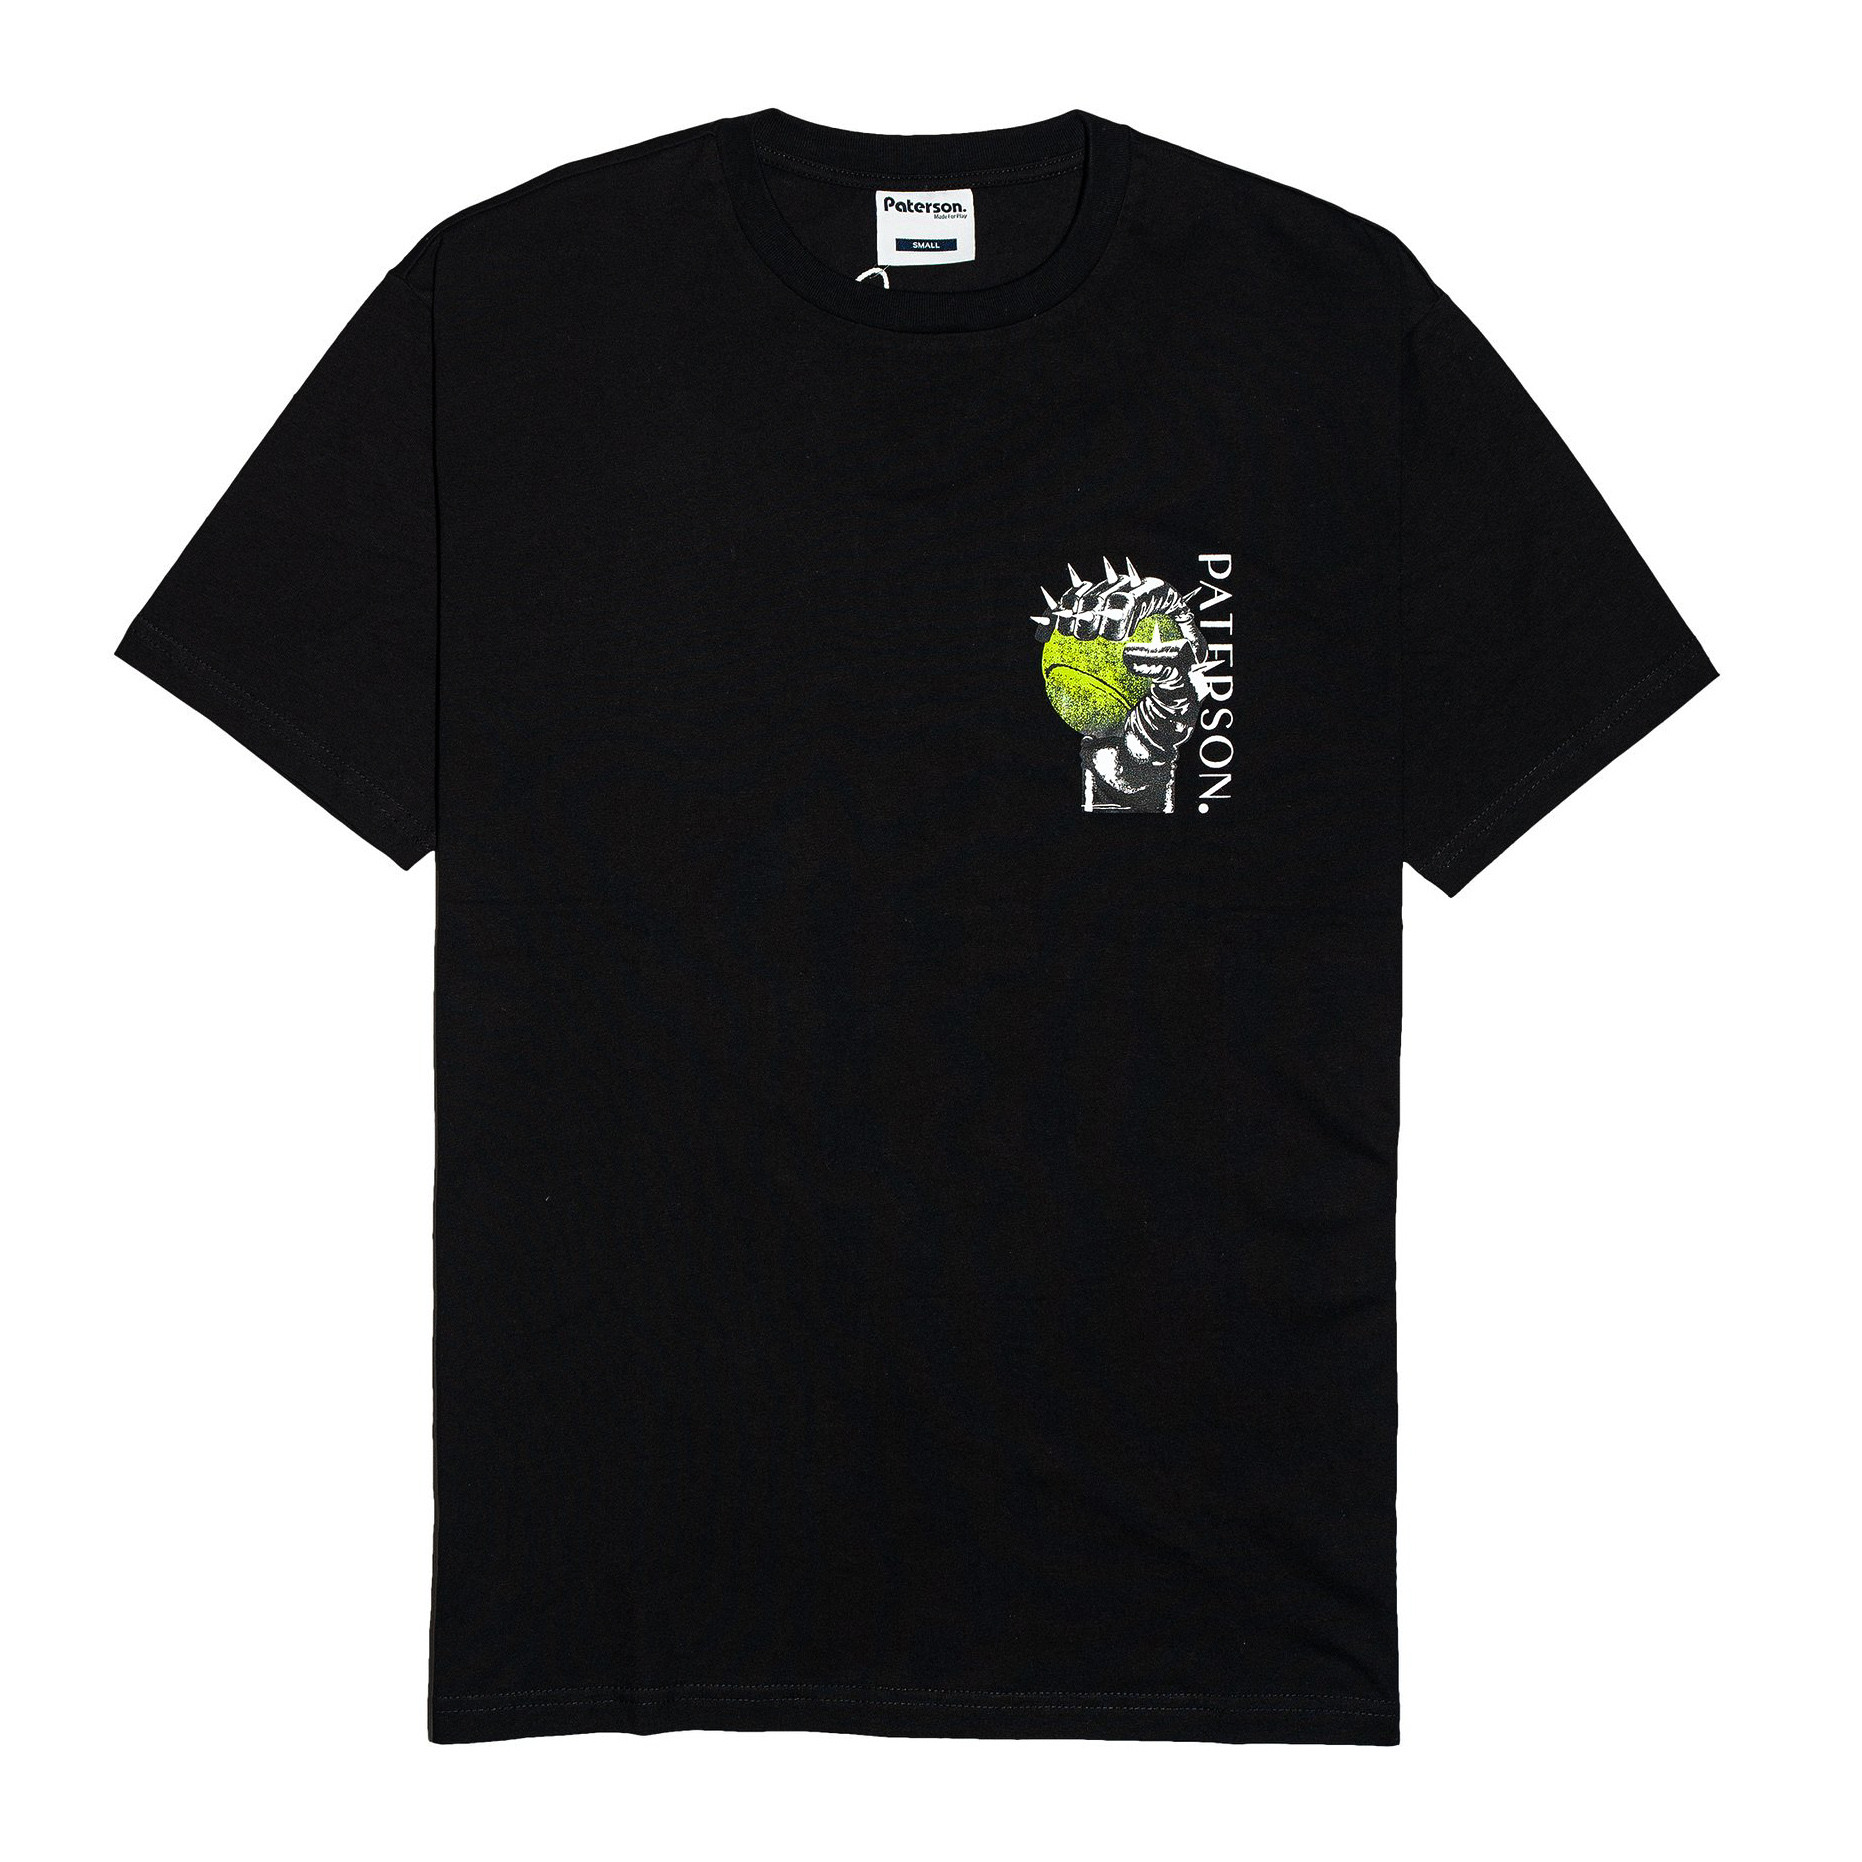 Paterson DEATHGRIP SS TEE Black